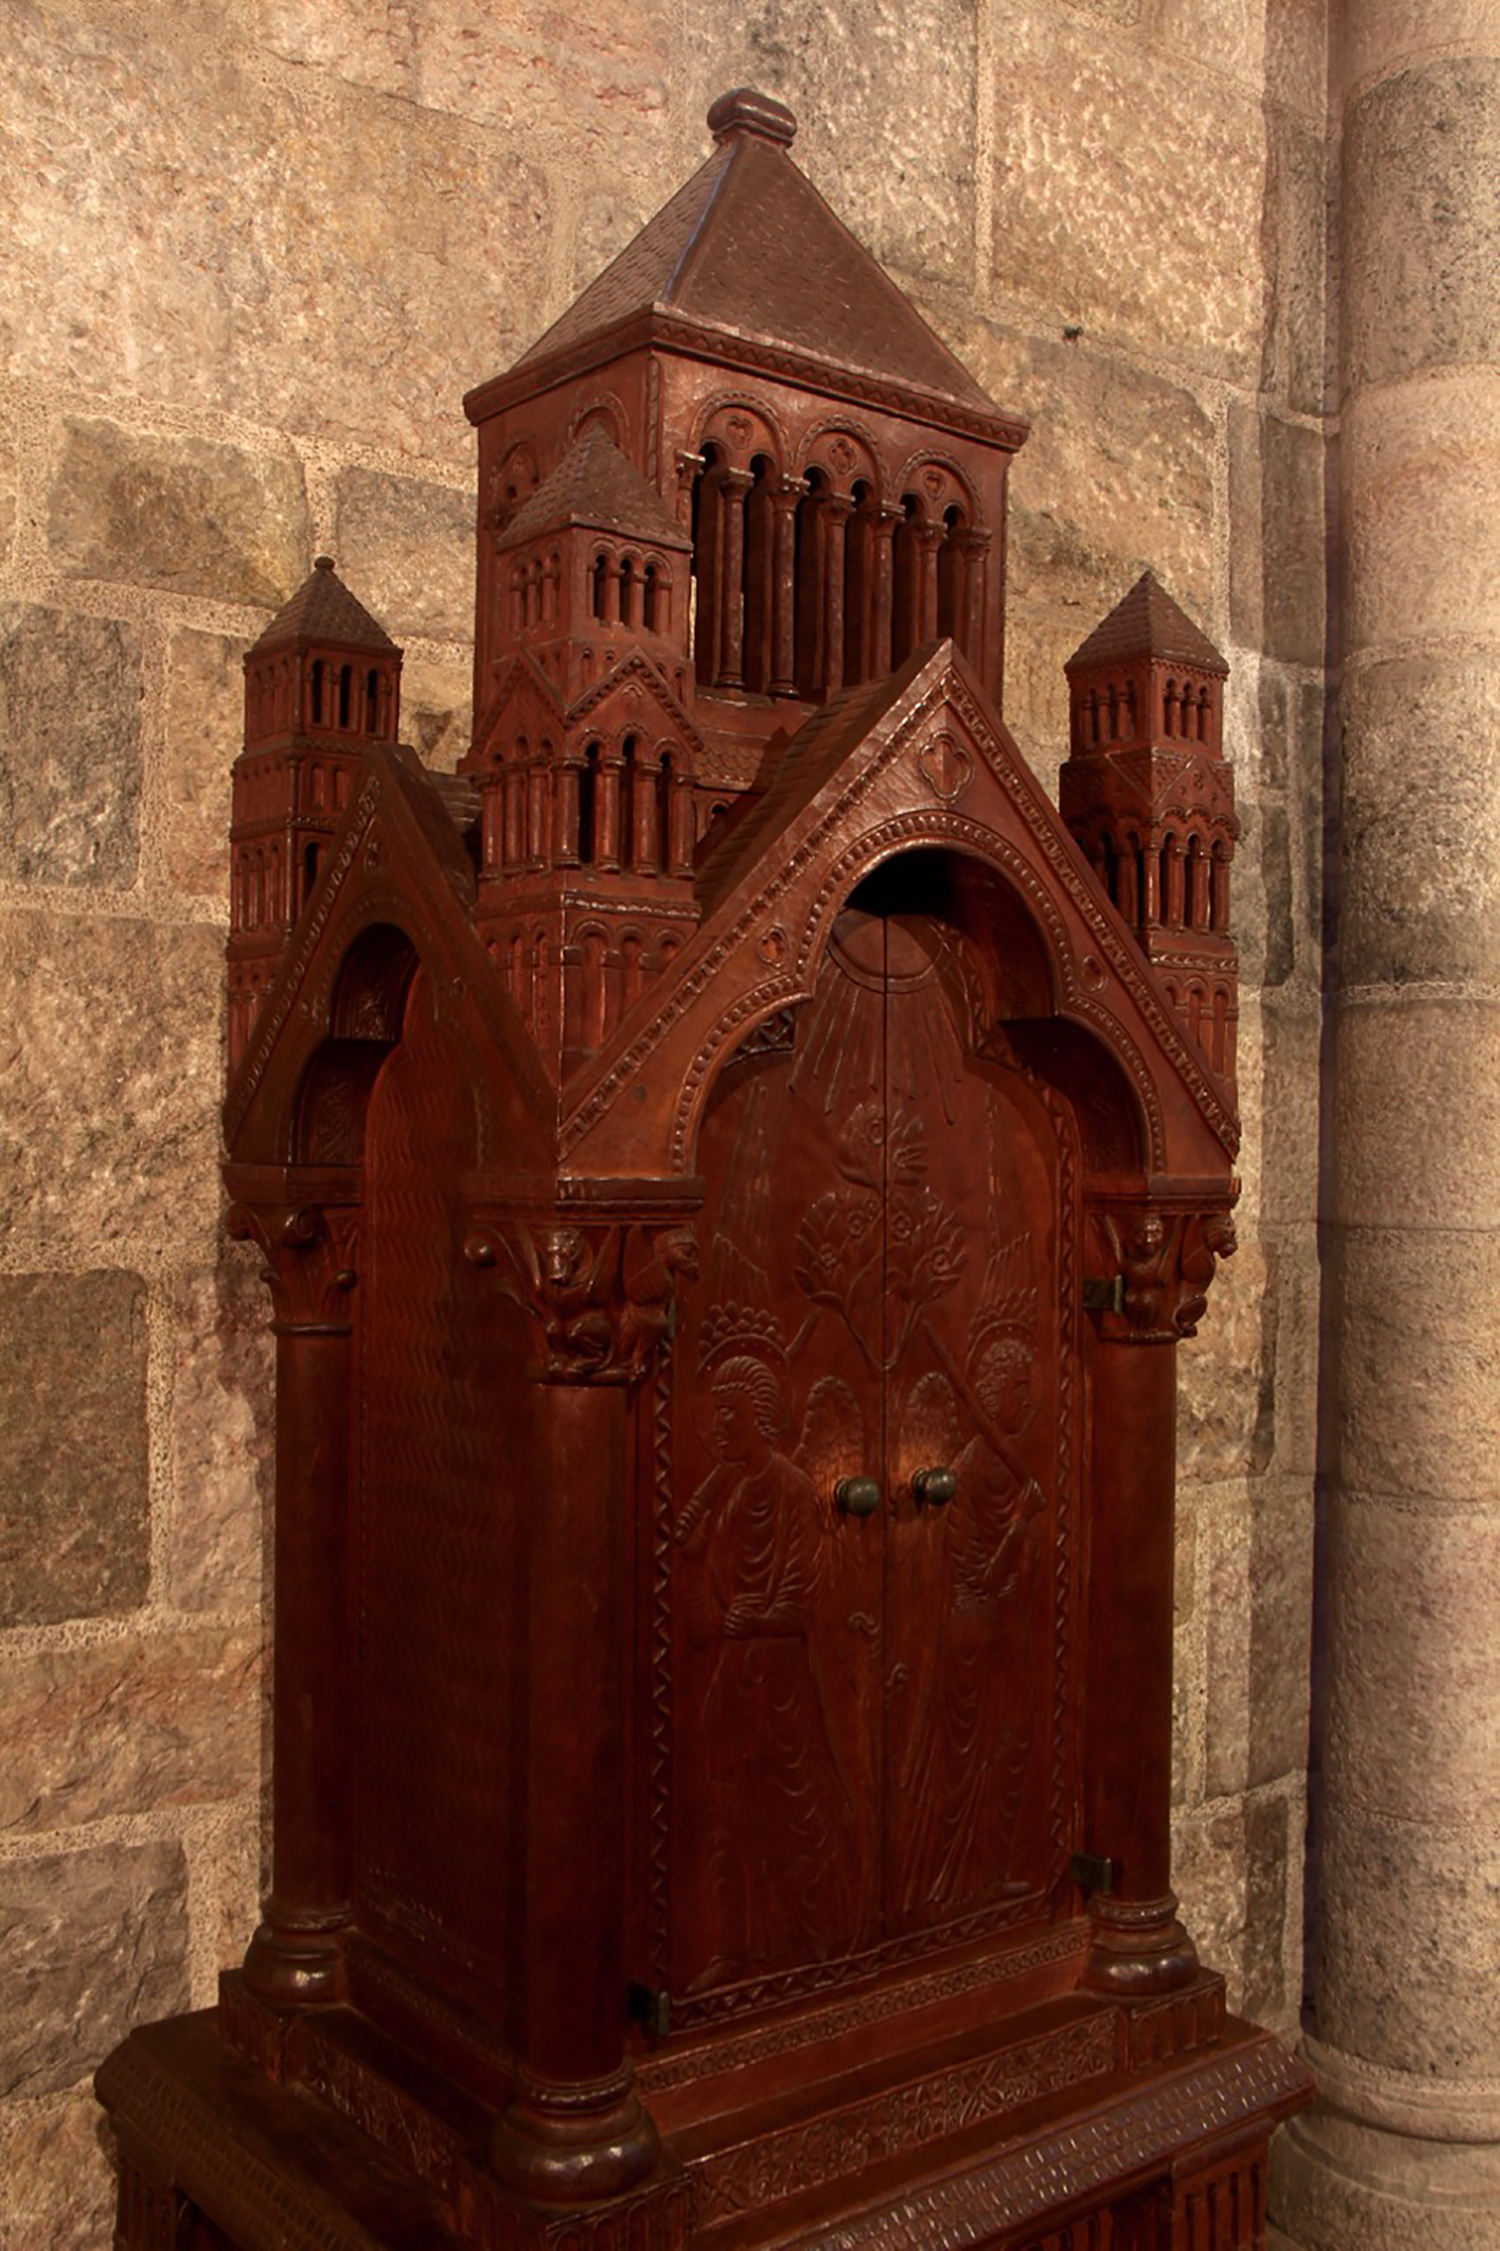 Figure 10: The doors on this cherrywood Bible cabinet, made for Glencairn's chapel by woodcarver Frank Jeck, feature images of the angels who stood guard at the entrance to the garden of Eden. The two small wood-carved capitals depicting the four living creatures around the throne of God in heaven (Book of Revelation 4:7) are repeated in stone on two large capitals above the cabinet. Both of these themes are repeated elsewhere in the chapel; the angels with flaming swords are also carved in stone at the chapel's entrance, and the four living creatures are depicted in an elaborate mosaic on the ceiling. This Bible cabinet was made for Glencairn's chapel around 1926, before construction on the building began in 1928.